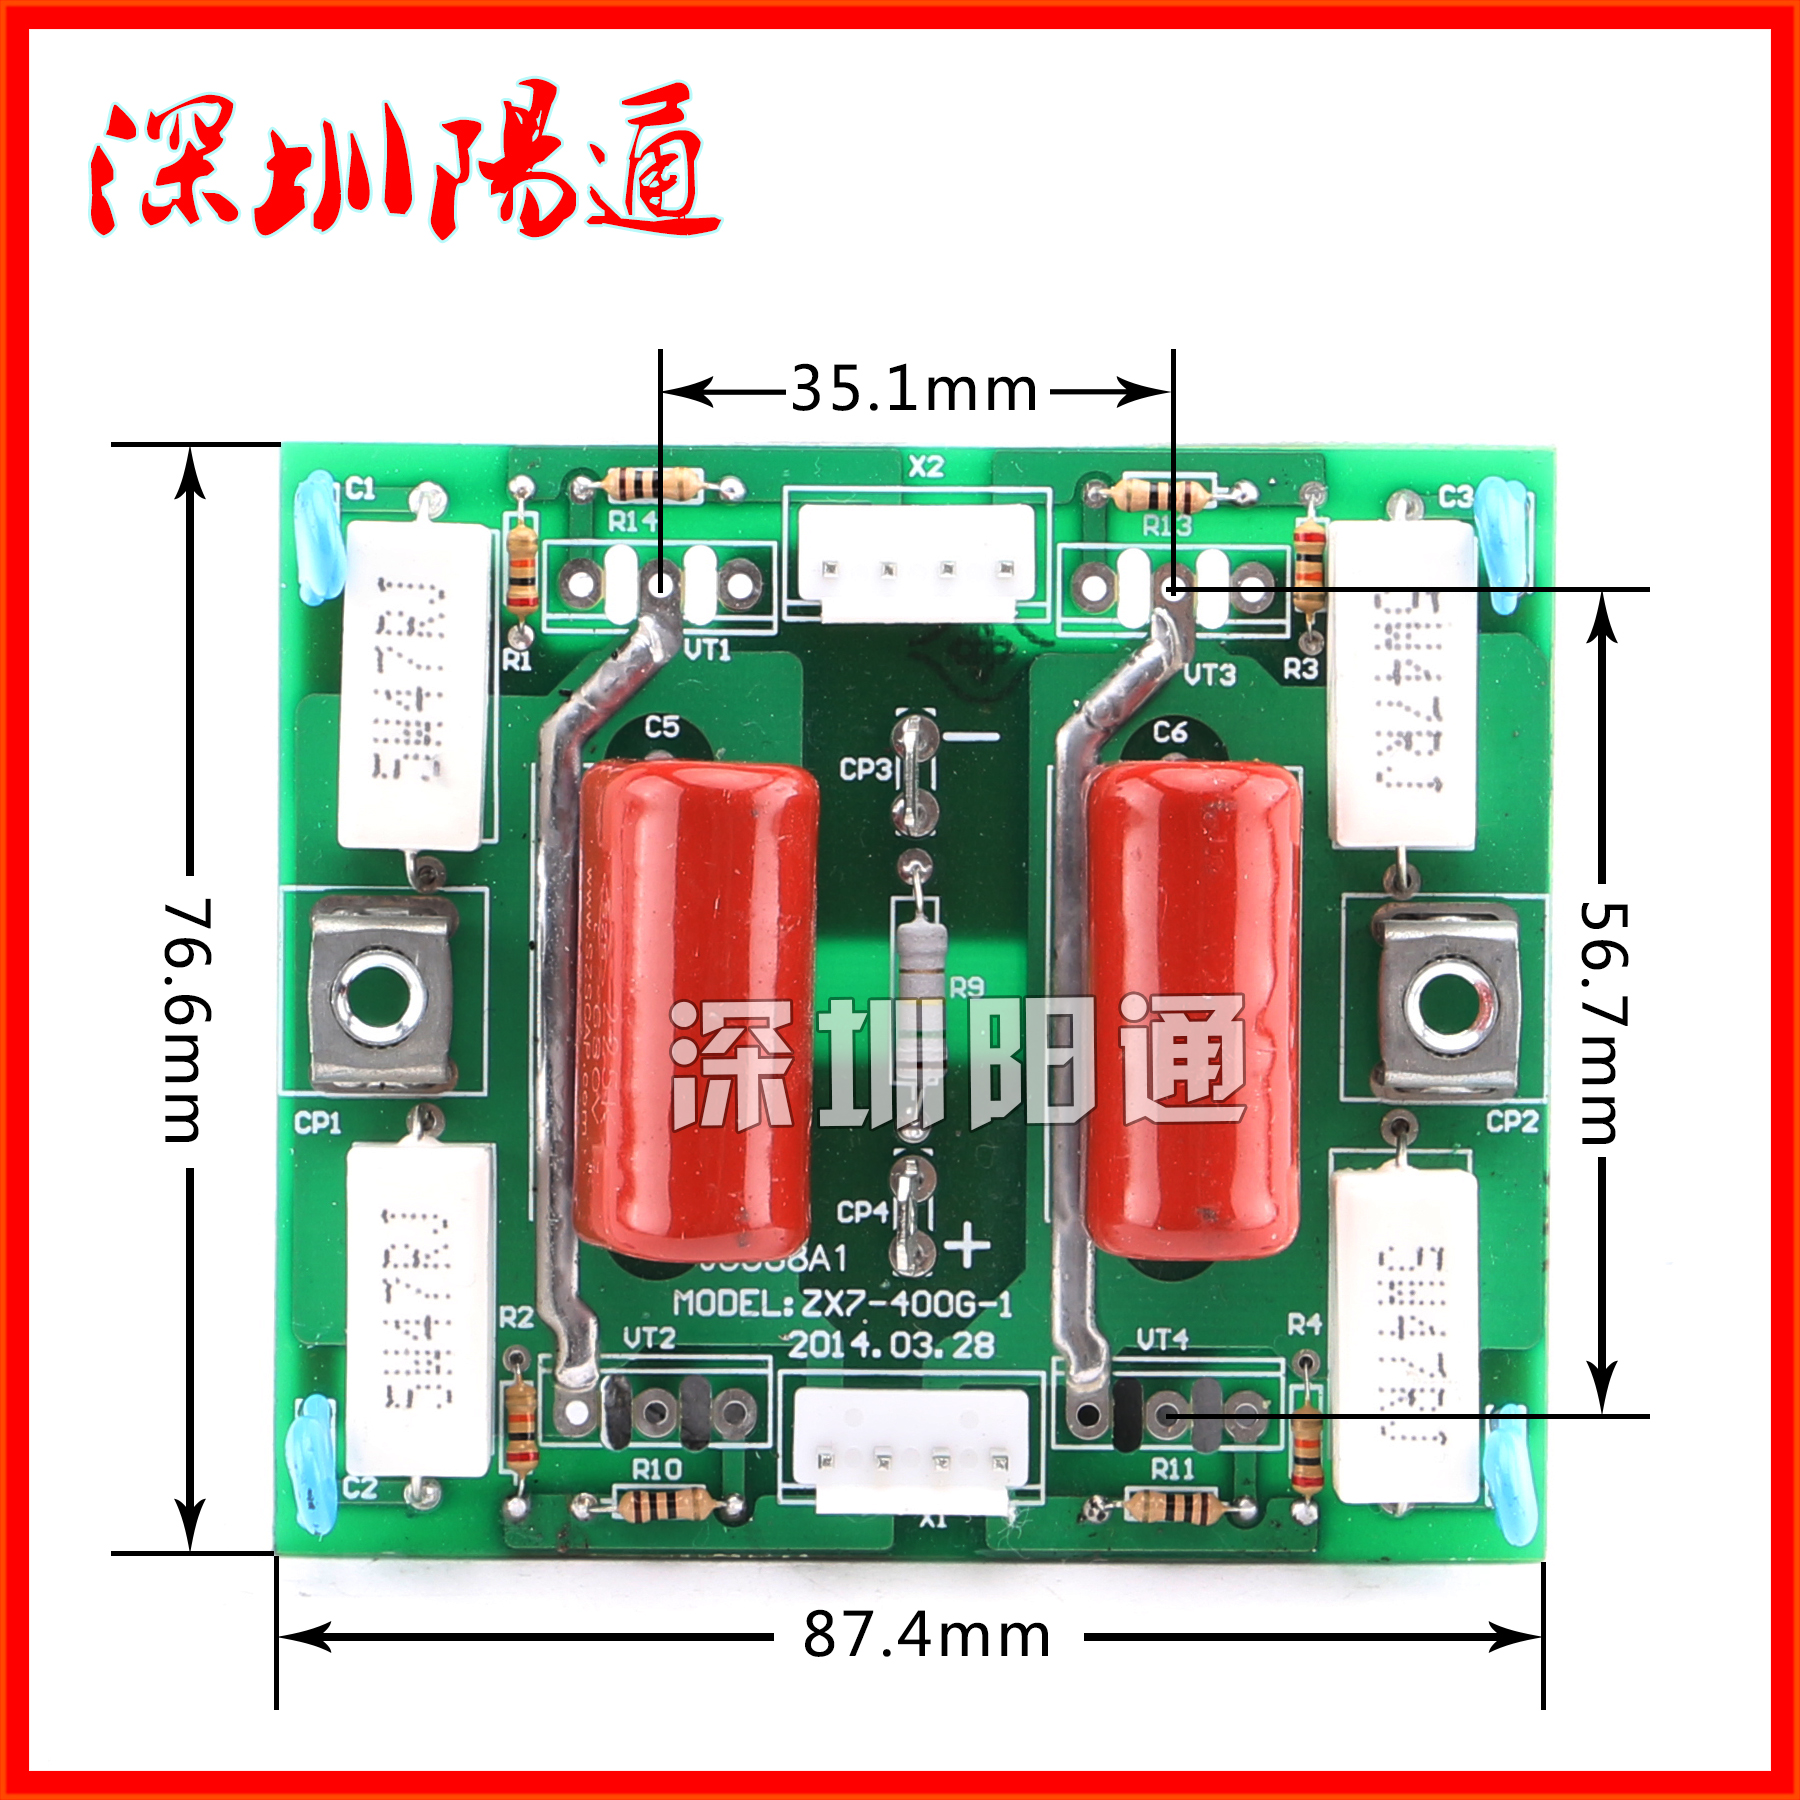 hight resolution of single tube zx7400igbt electric welding machine inverter plate constant feed inverter dc electric welding machine circuit boar in air conditioner parts from